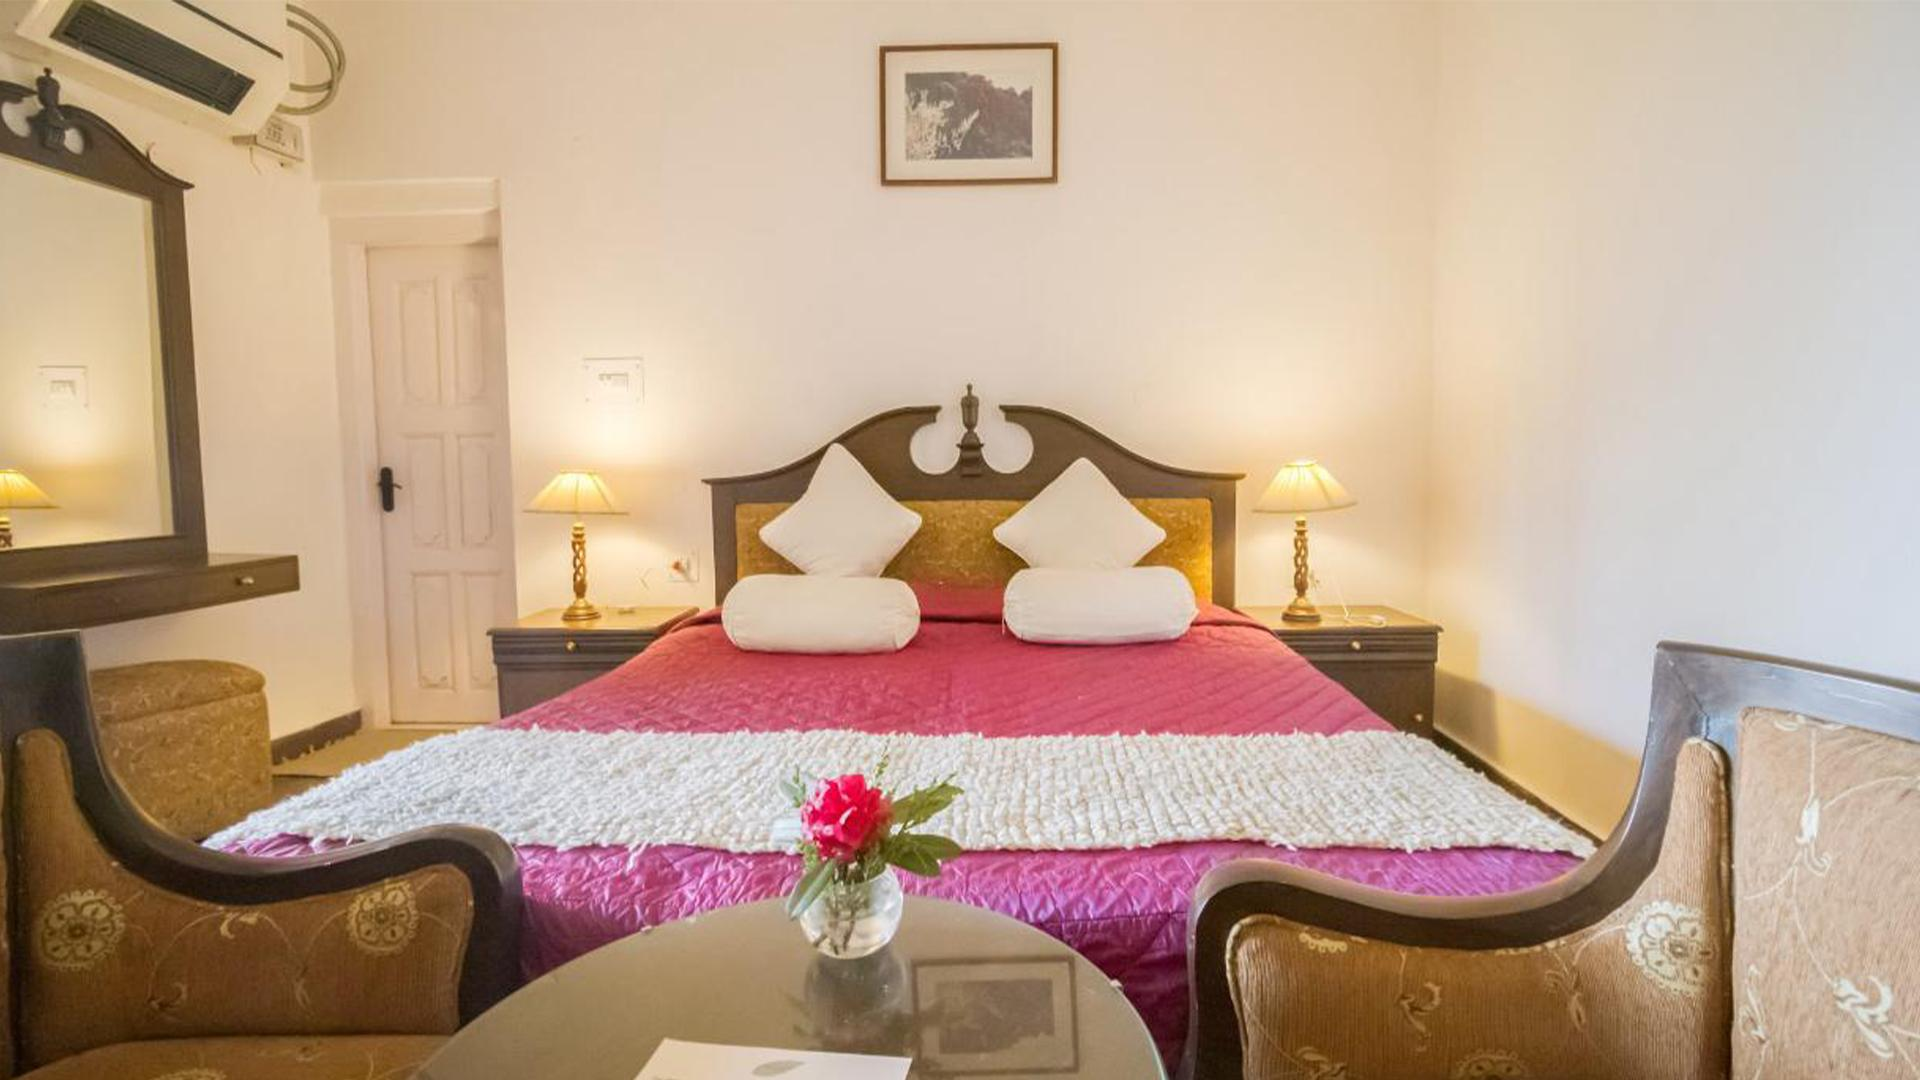 Valley View Hideaway Room image 1 at Tree of Life Grand Oak Manor, Binsar by null, Uttarakhand, India